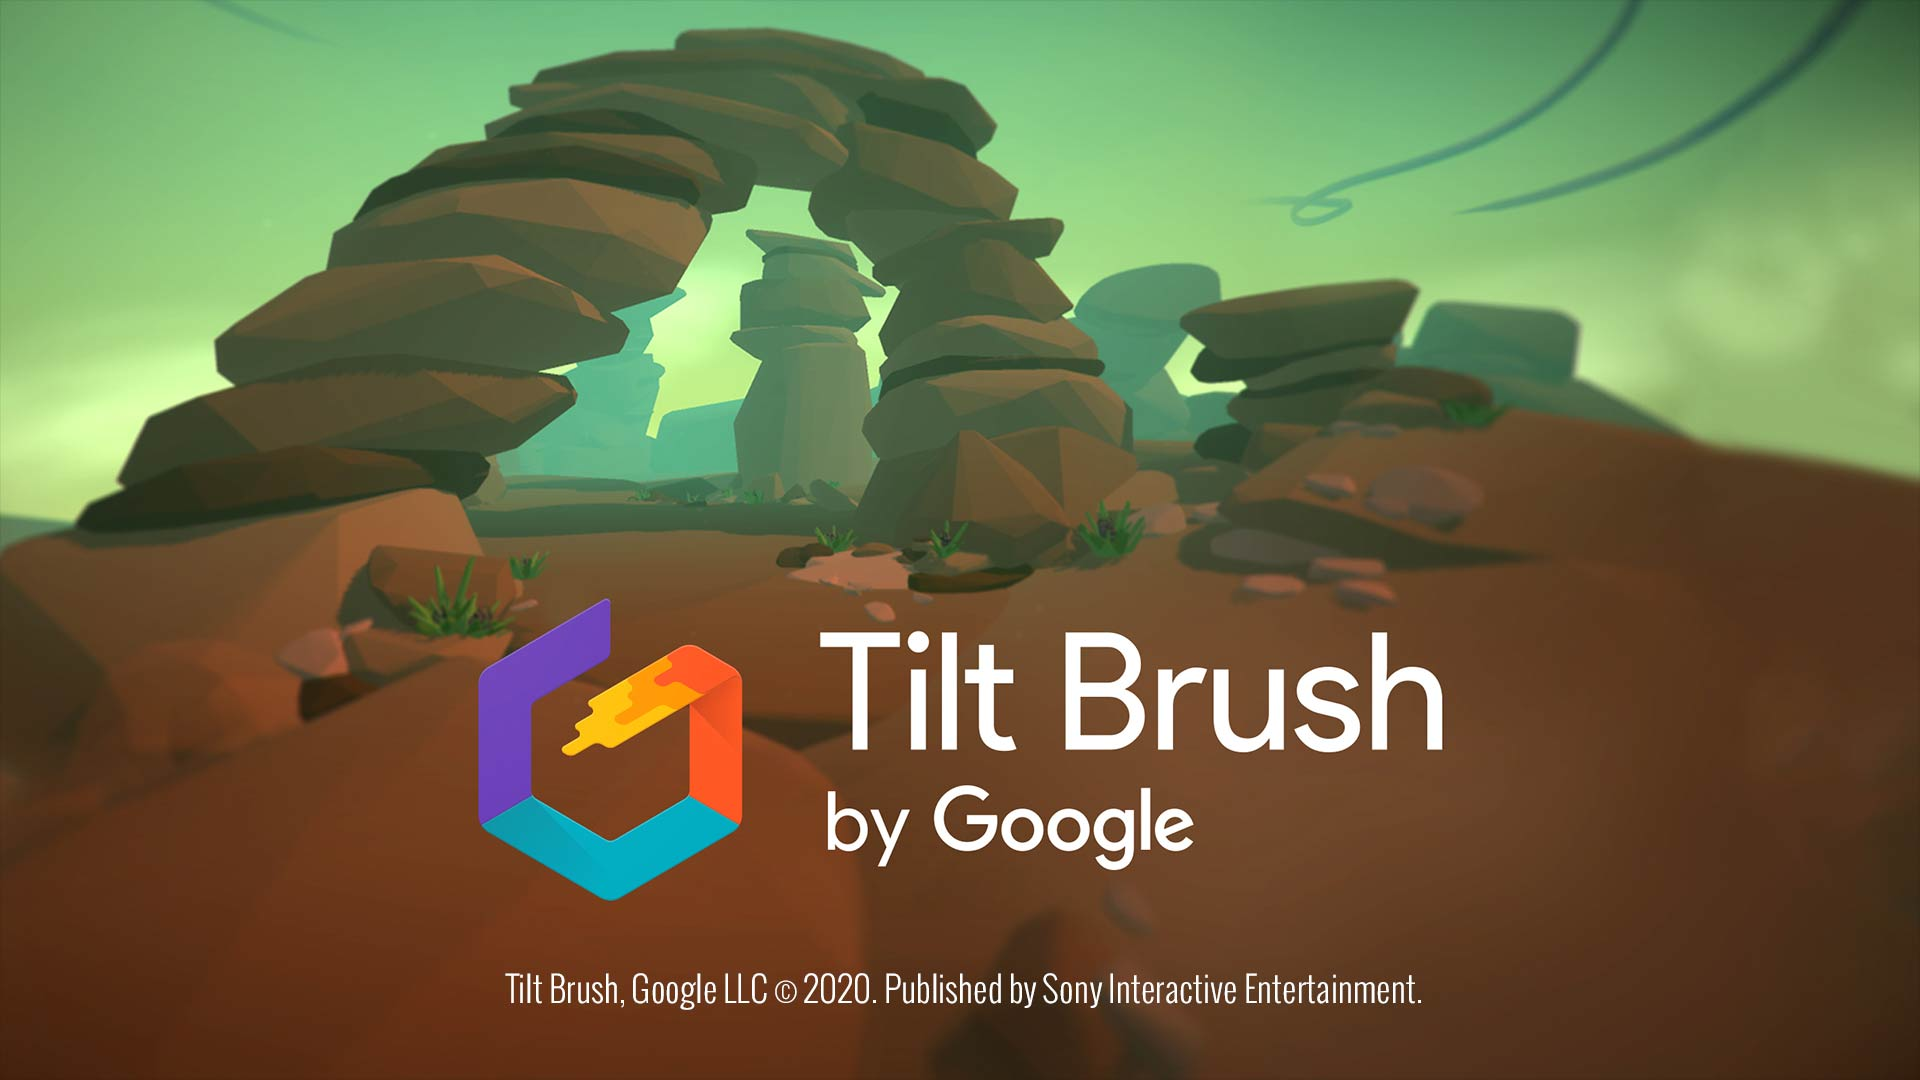 Tilt Brush coming to PSVR